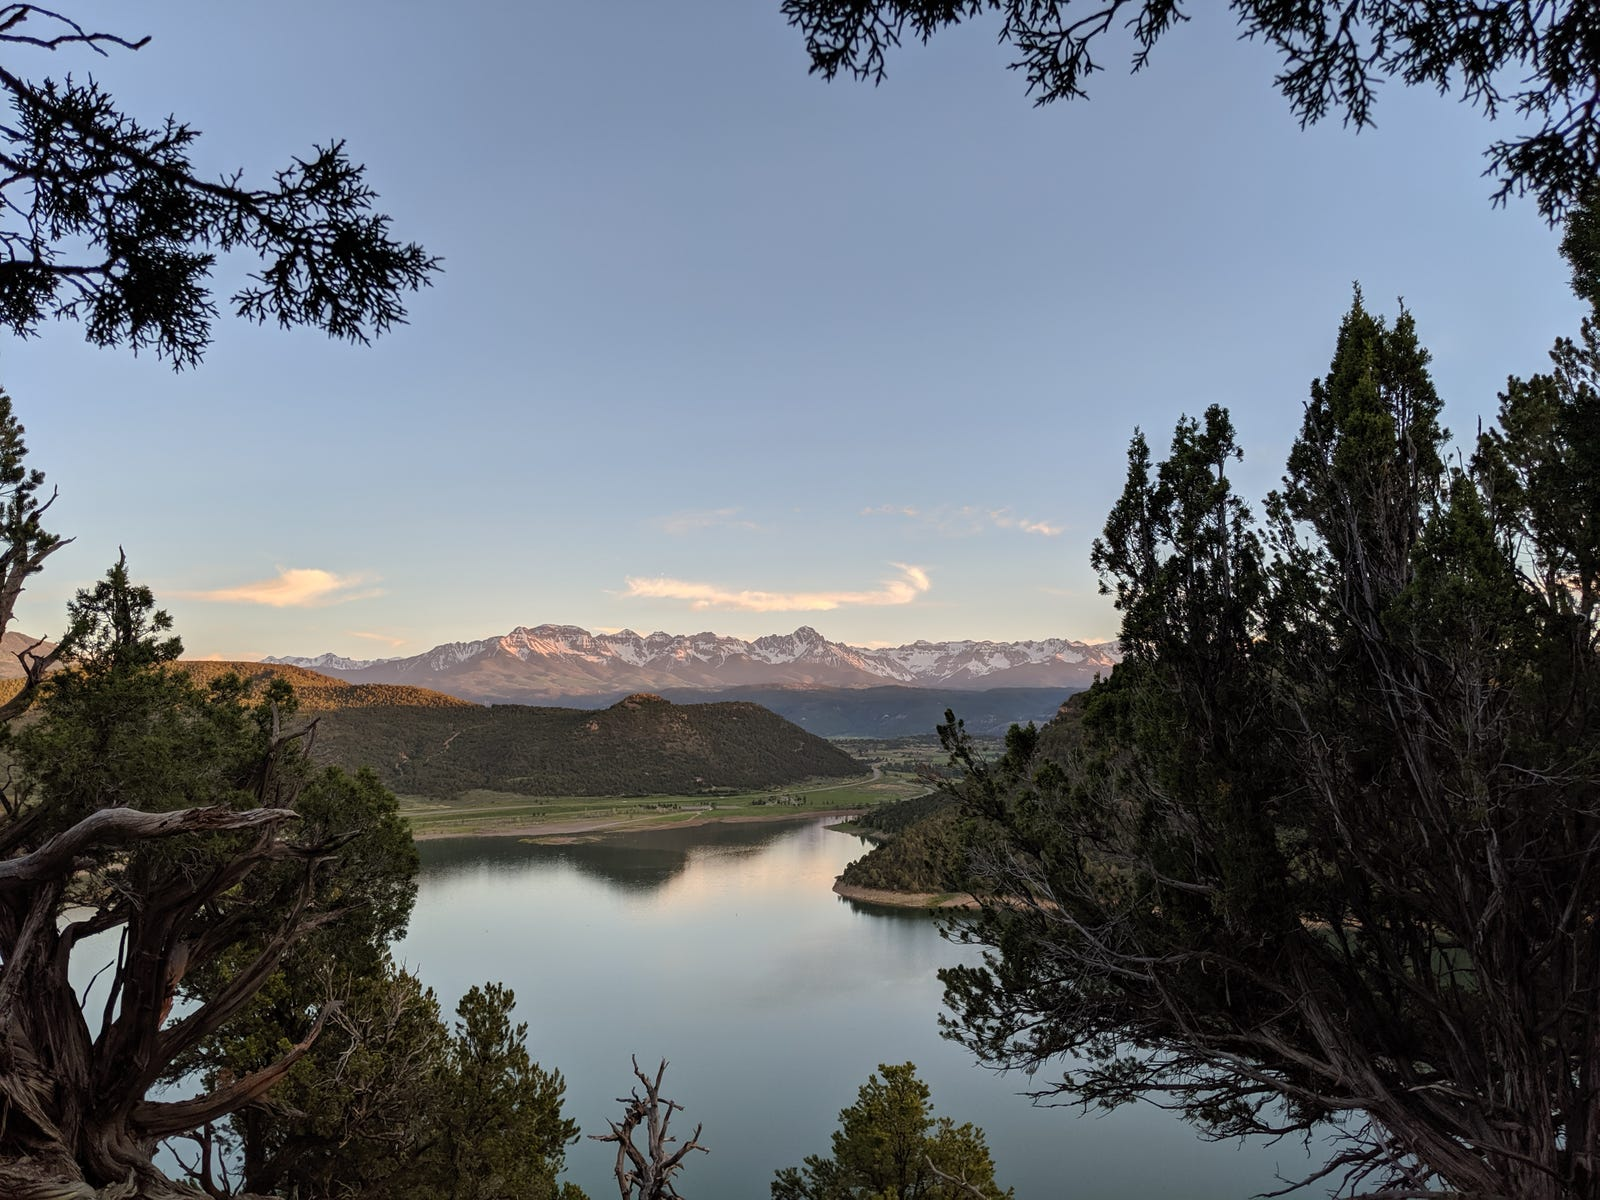 View from our campsite at Ridgway State Park in Colorado